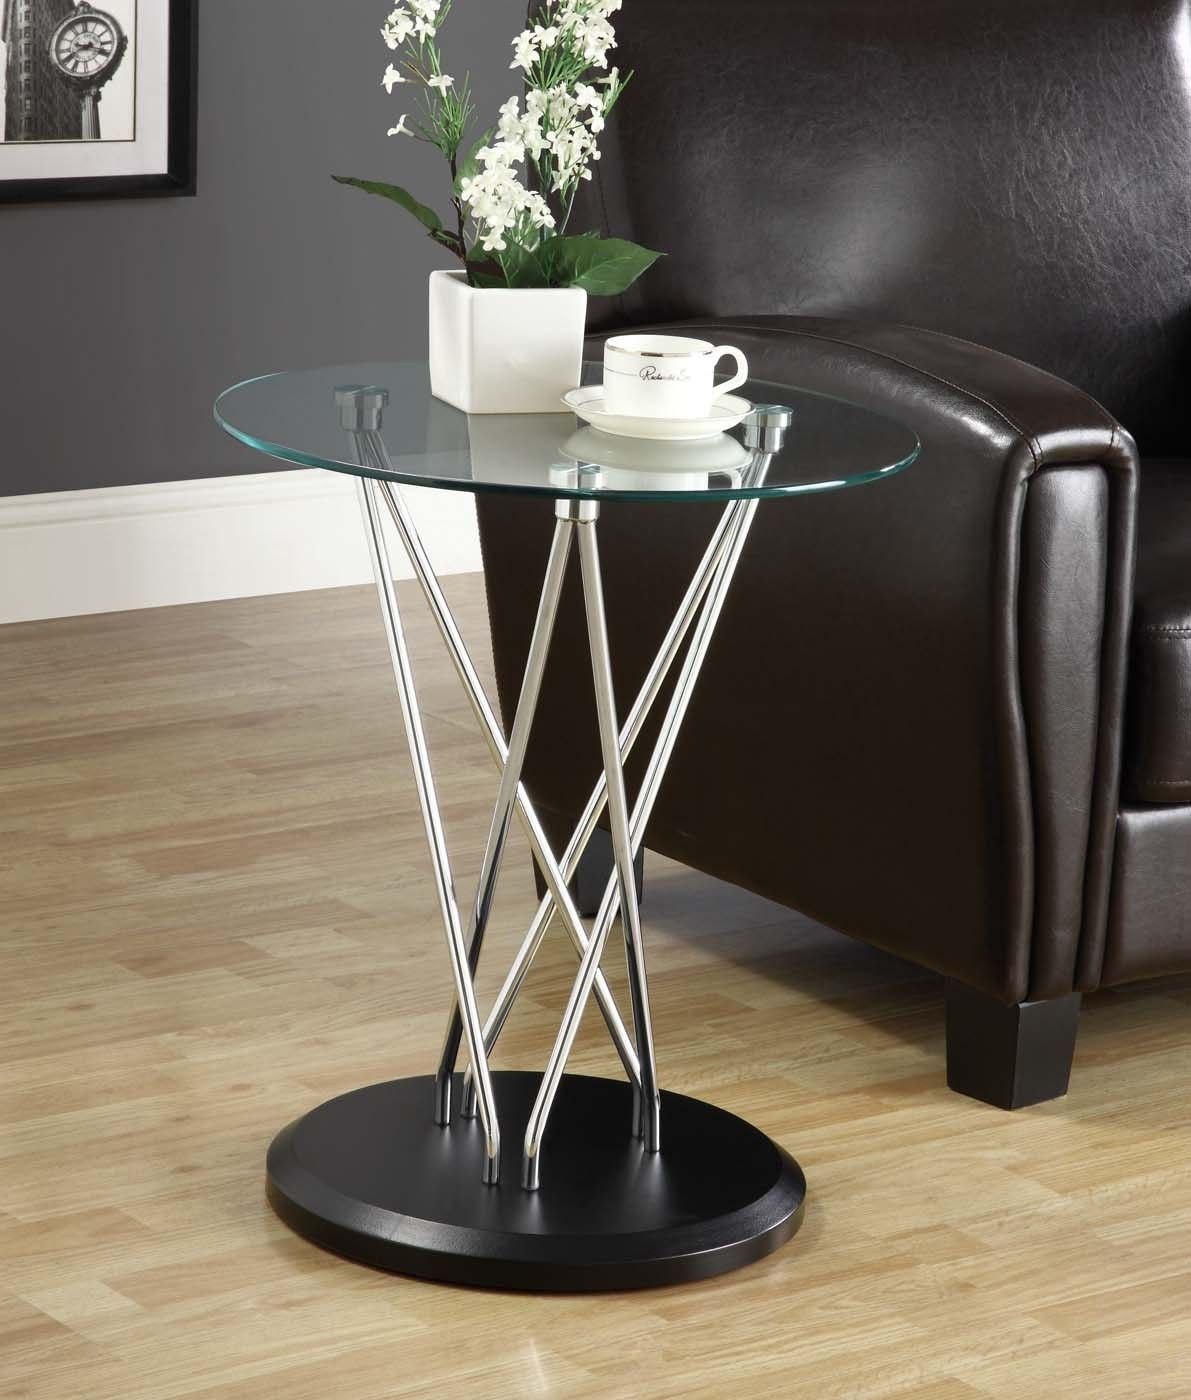 monarch specialties tempered glass top accent table chrome metal bentwood with and black base round patio furniture ashley sectional couch world market end lamps set mosaic garden